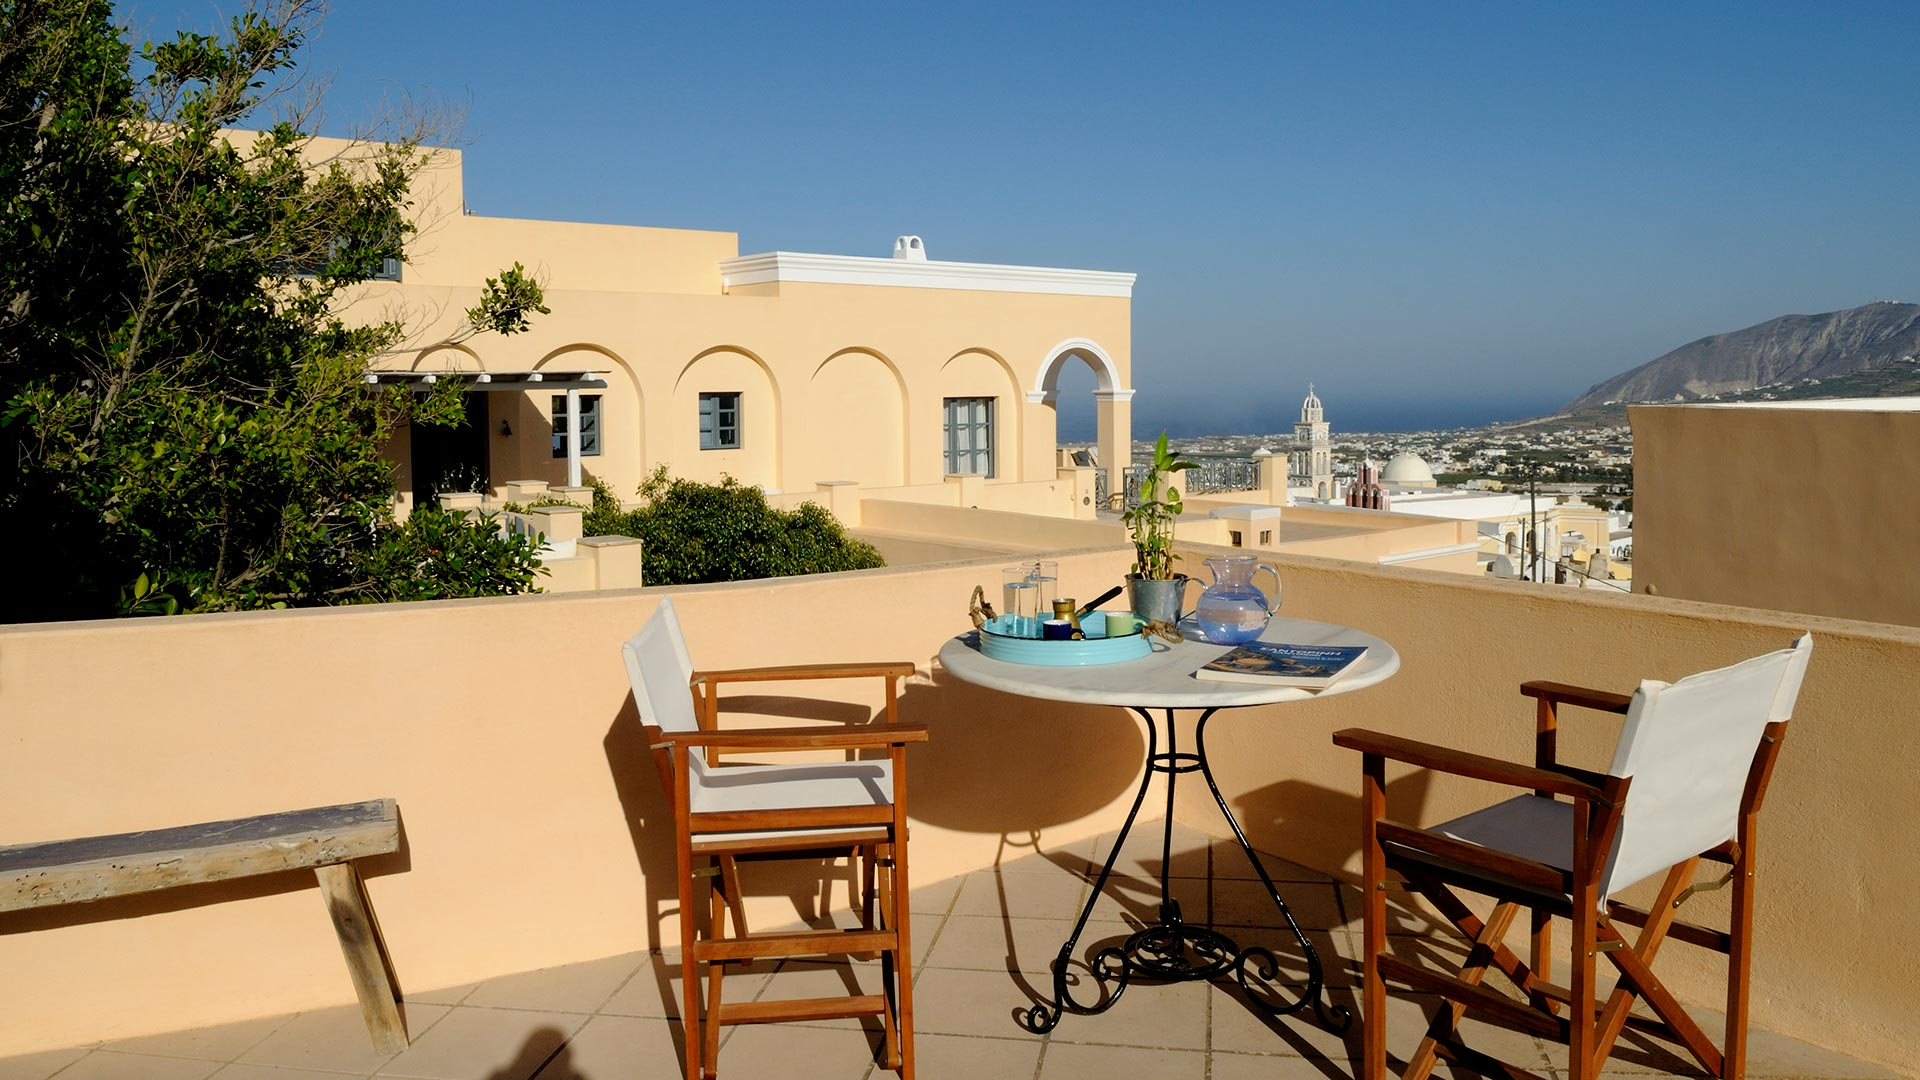 Whirlpool Outdoor Otto Santorini Perfect Villas Apartments Houses Reside Nces Oia